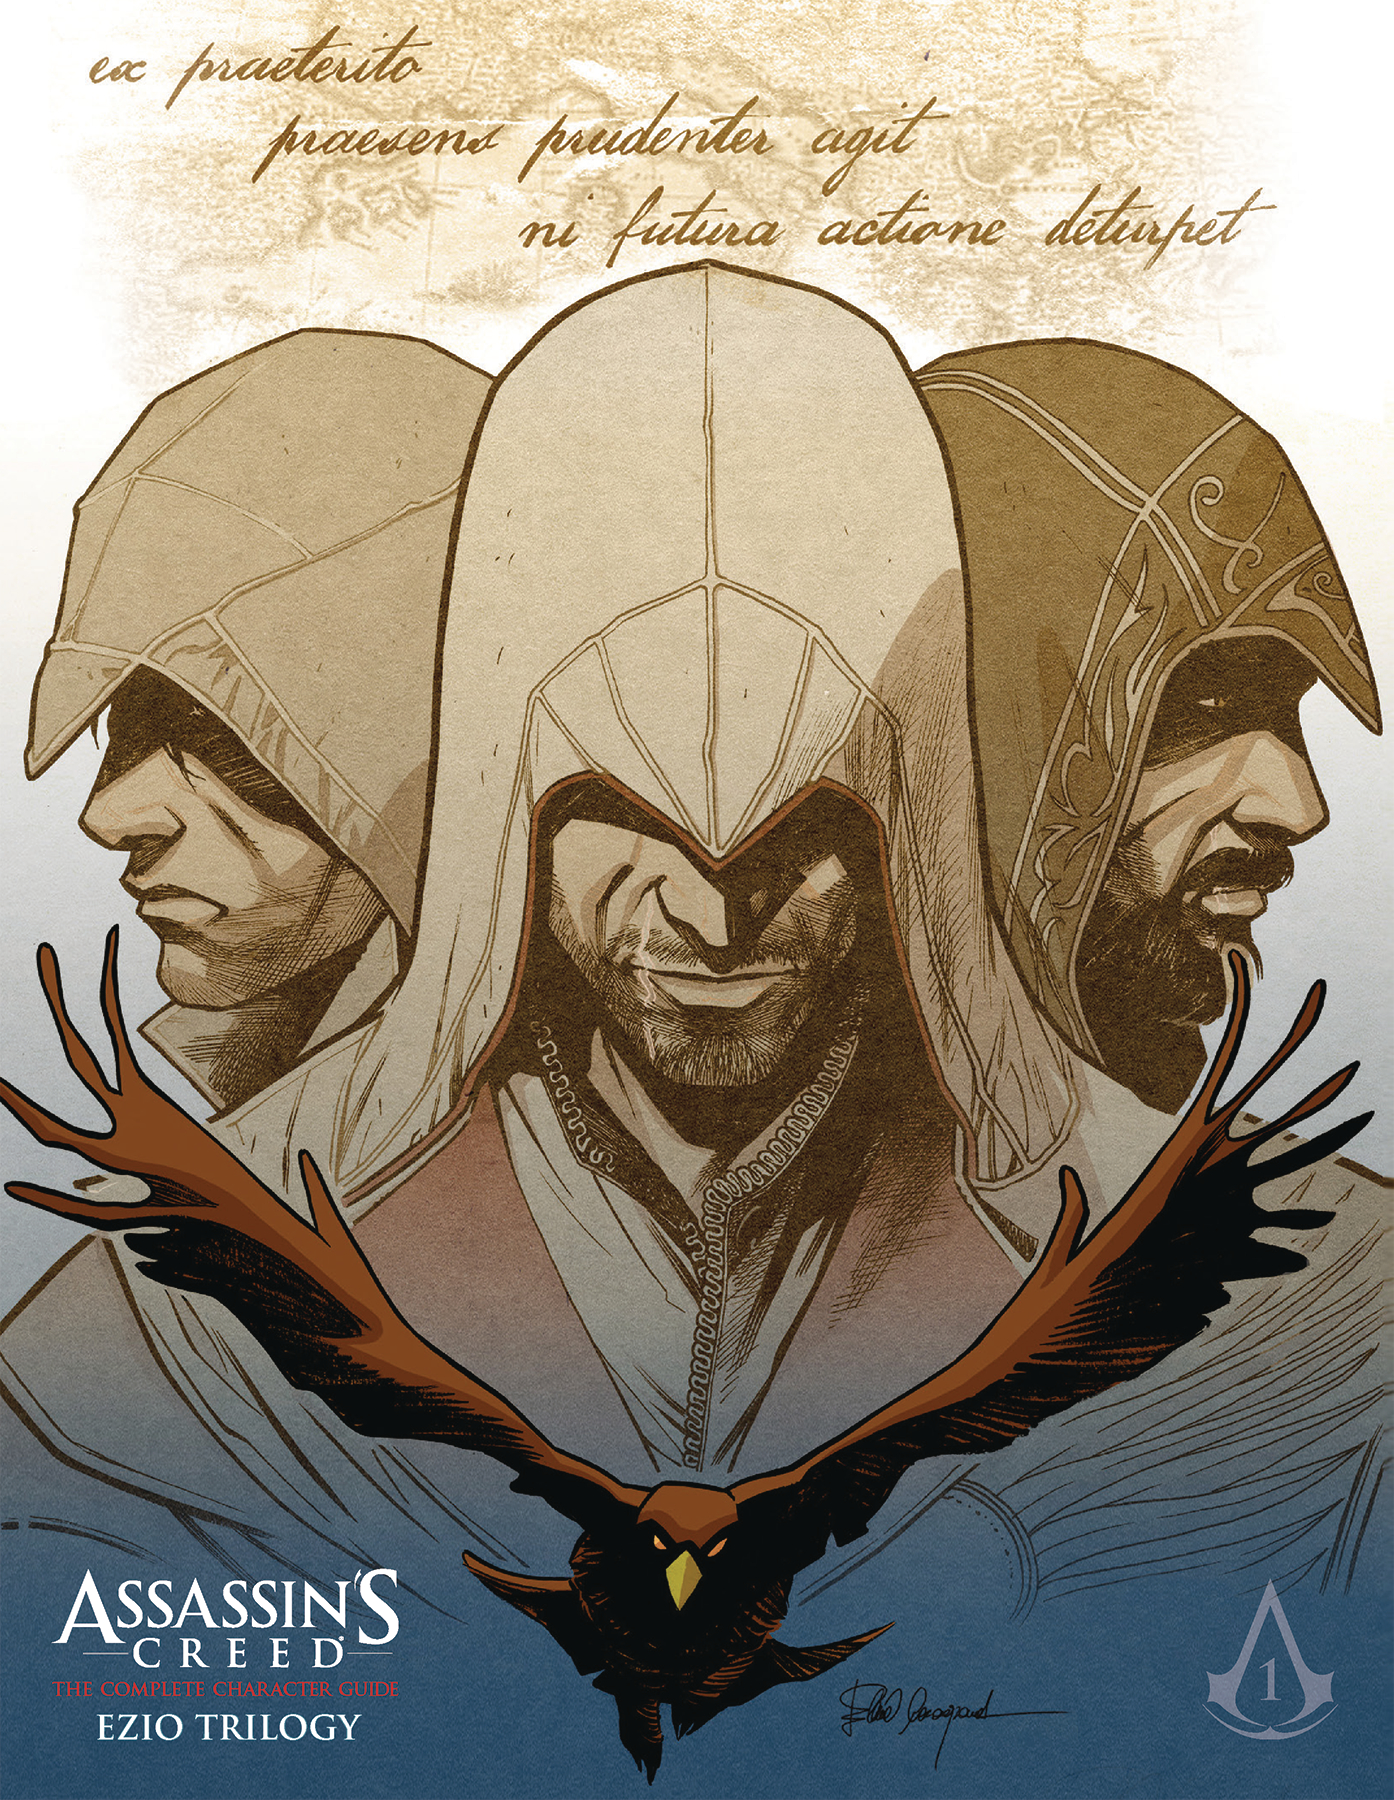 Sep191830 Assassins Creed Comp Character Guide Ezio Coll 1 Ezio Audit Previews World